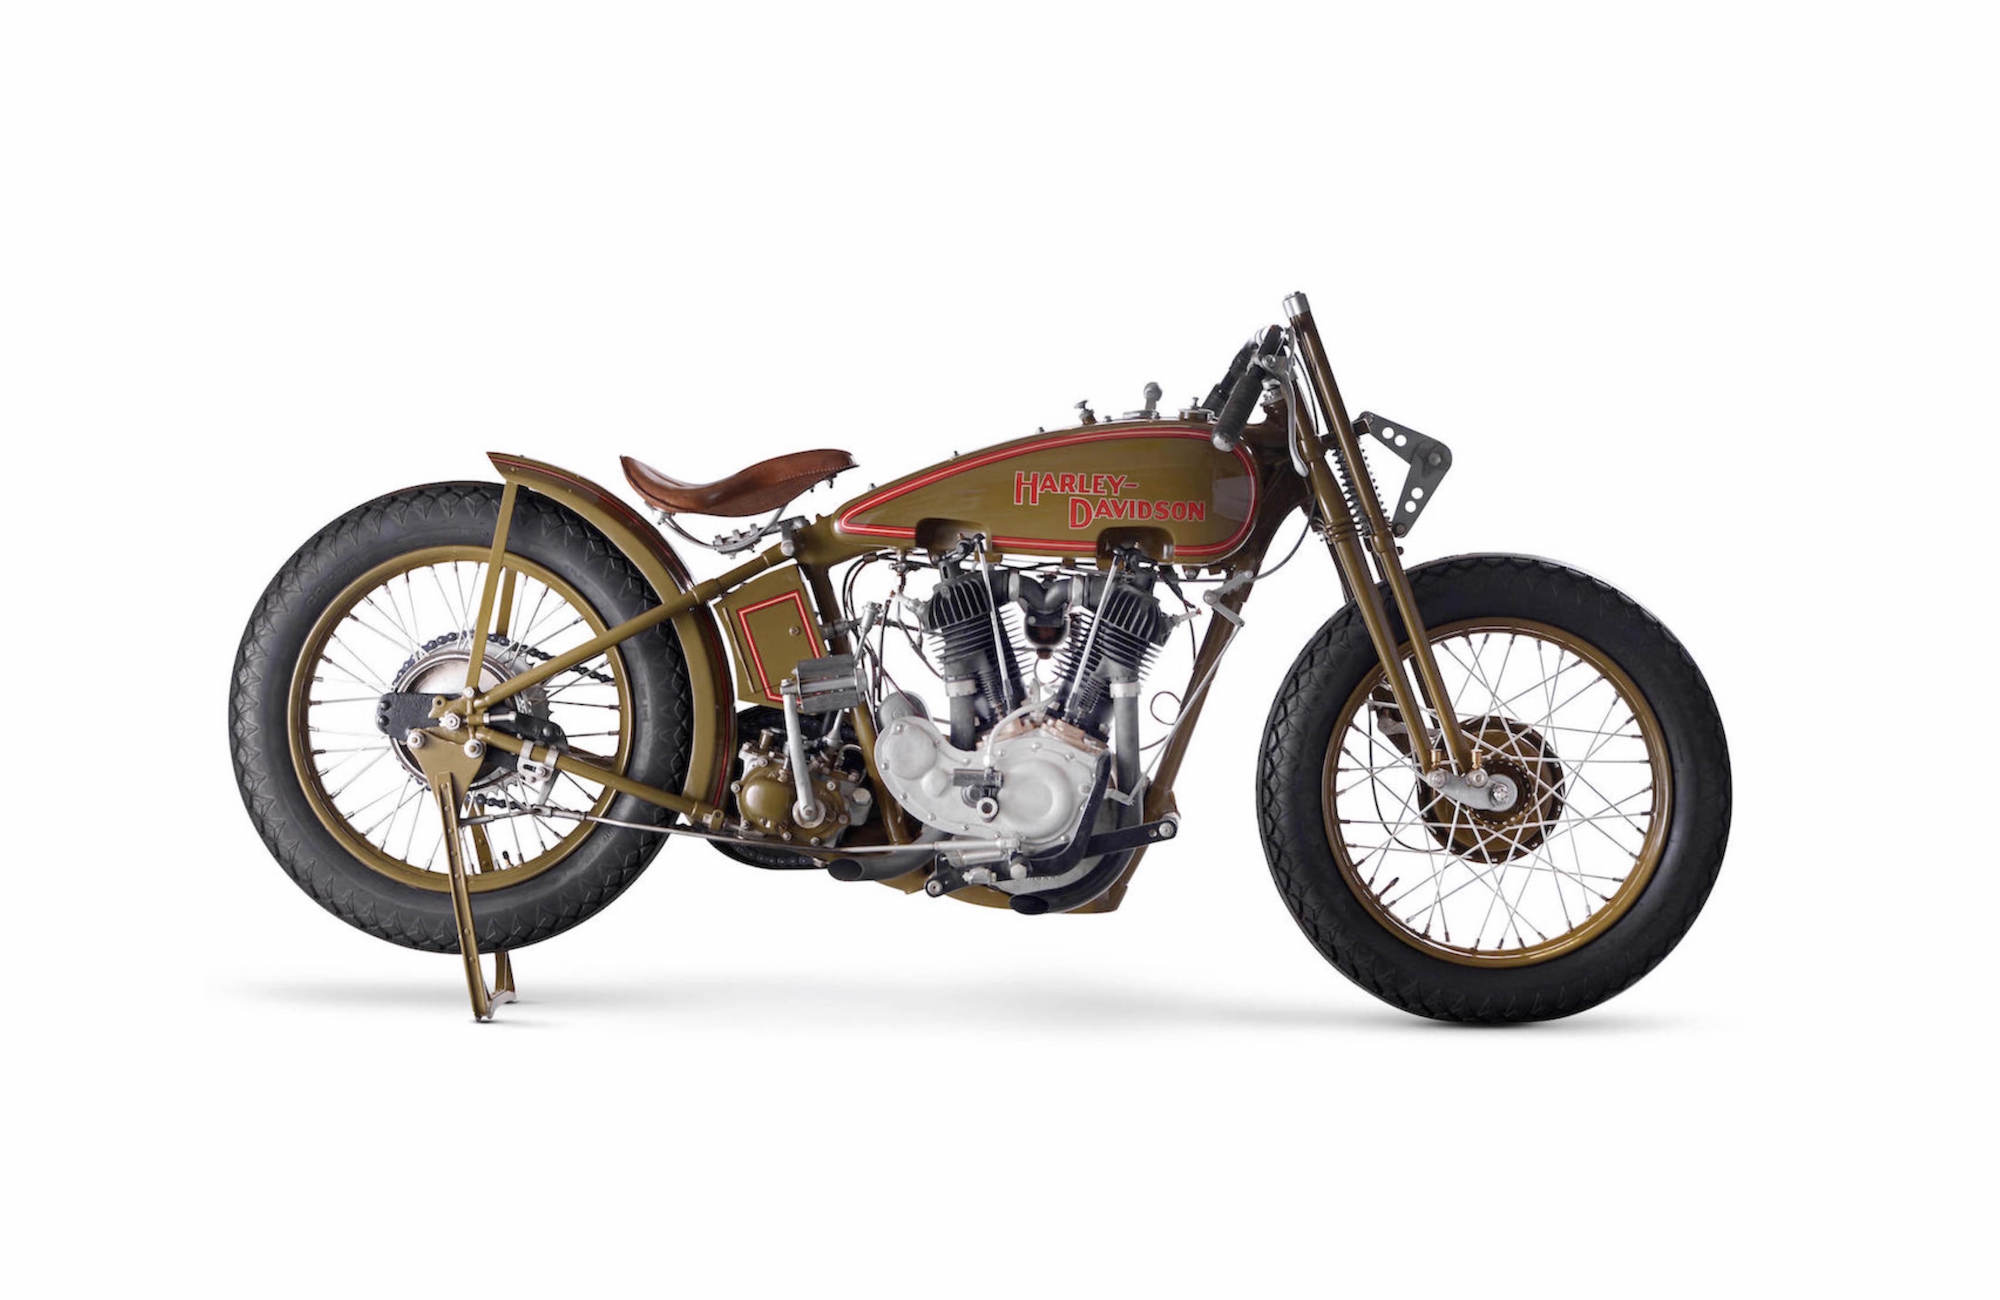 harley davidson racer cam 1928 motorcycle racing jdh motorcycles silodrome models american